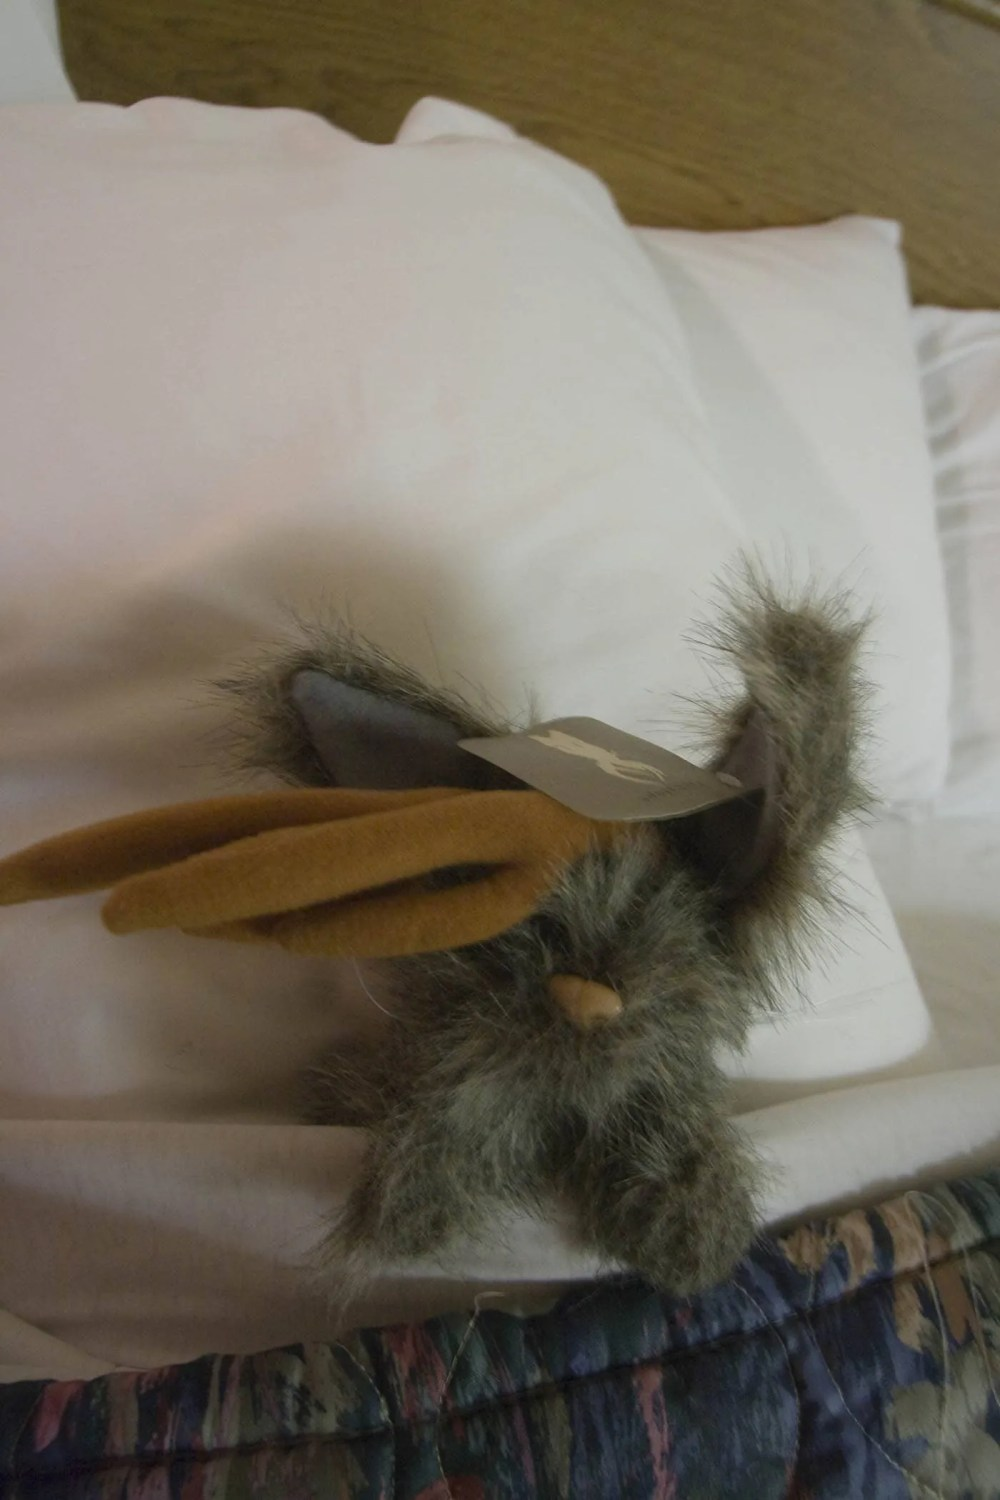 Flopsy the Jackalope - Silly America's jackalope mascot - tucked into a hotel bed after a long day of road tripping.